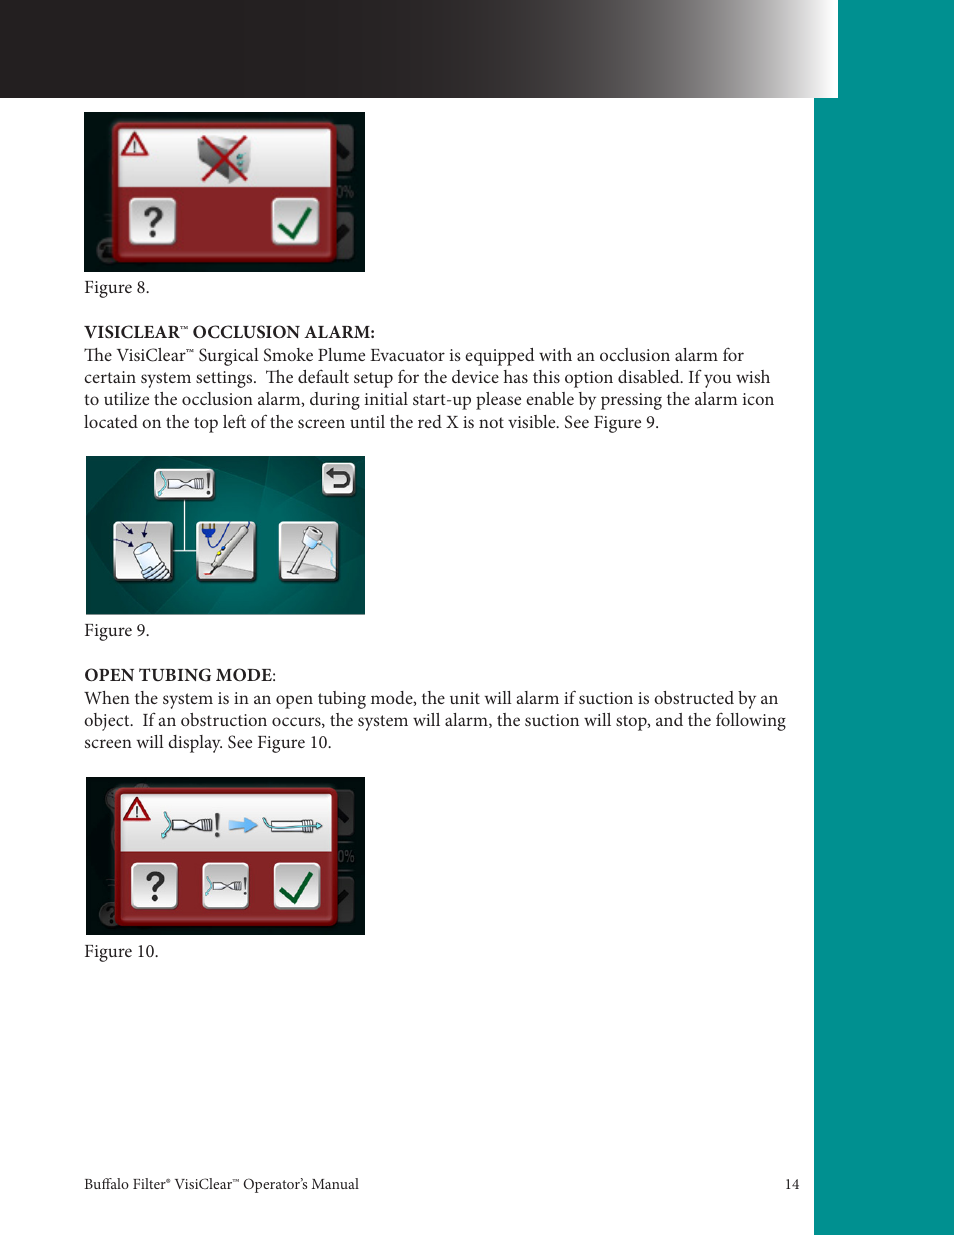 Buffalo Filter VisiClear User Manual   Page 14 / 30